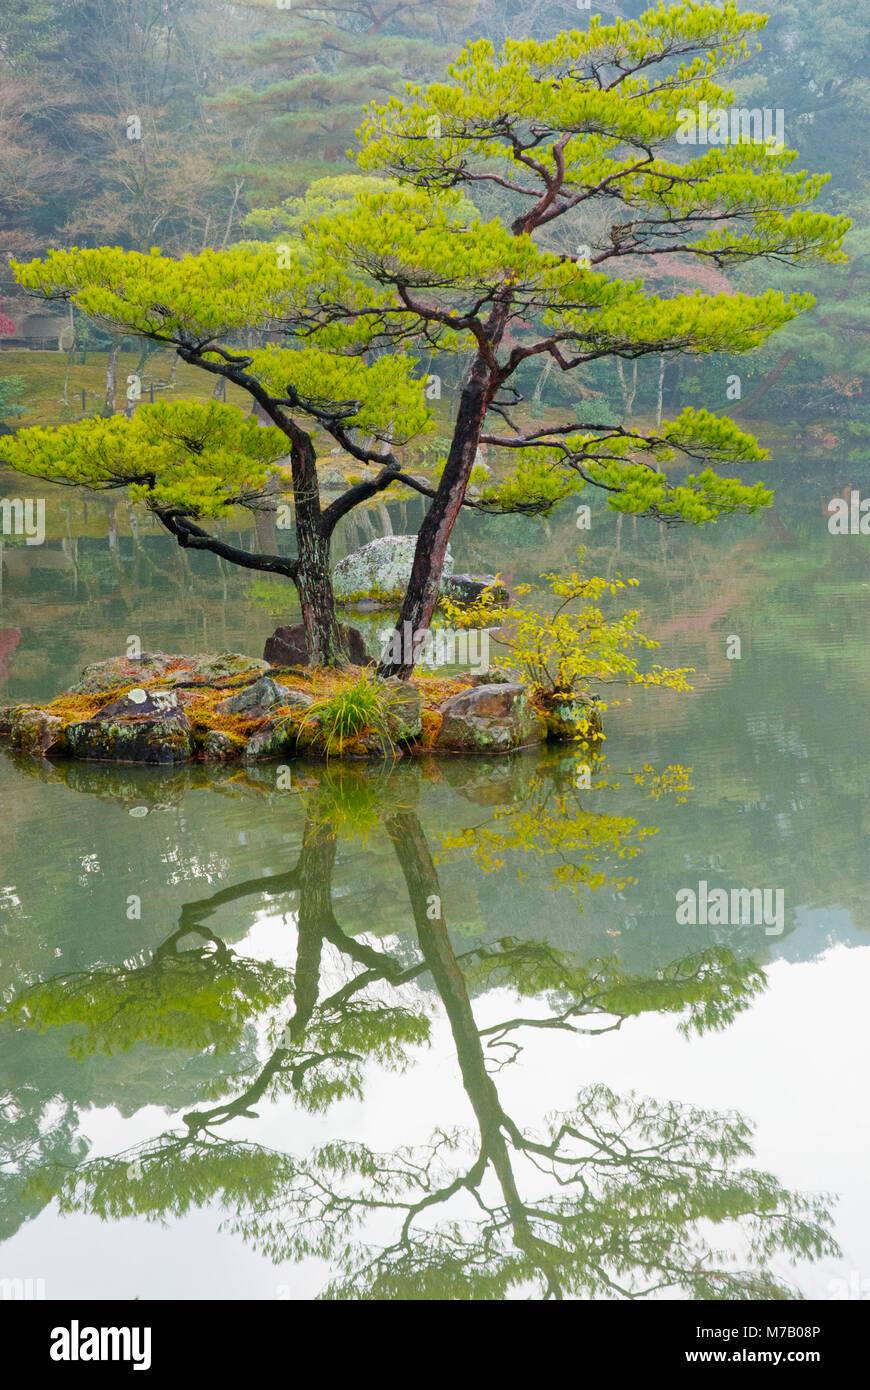 Reflection of trees in a forest - Stock Image